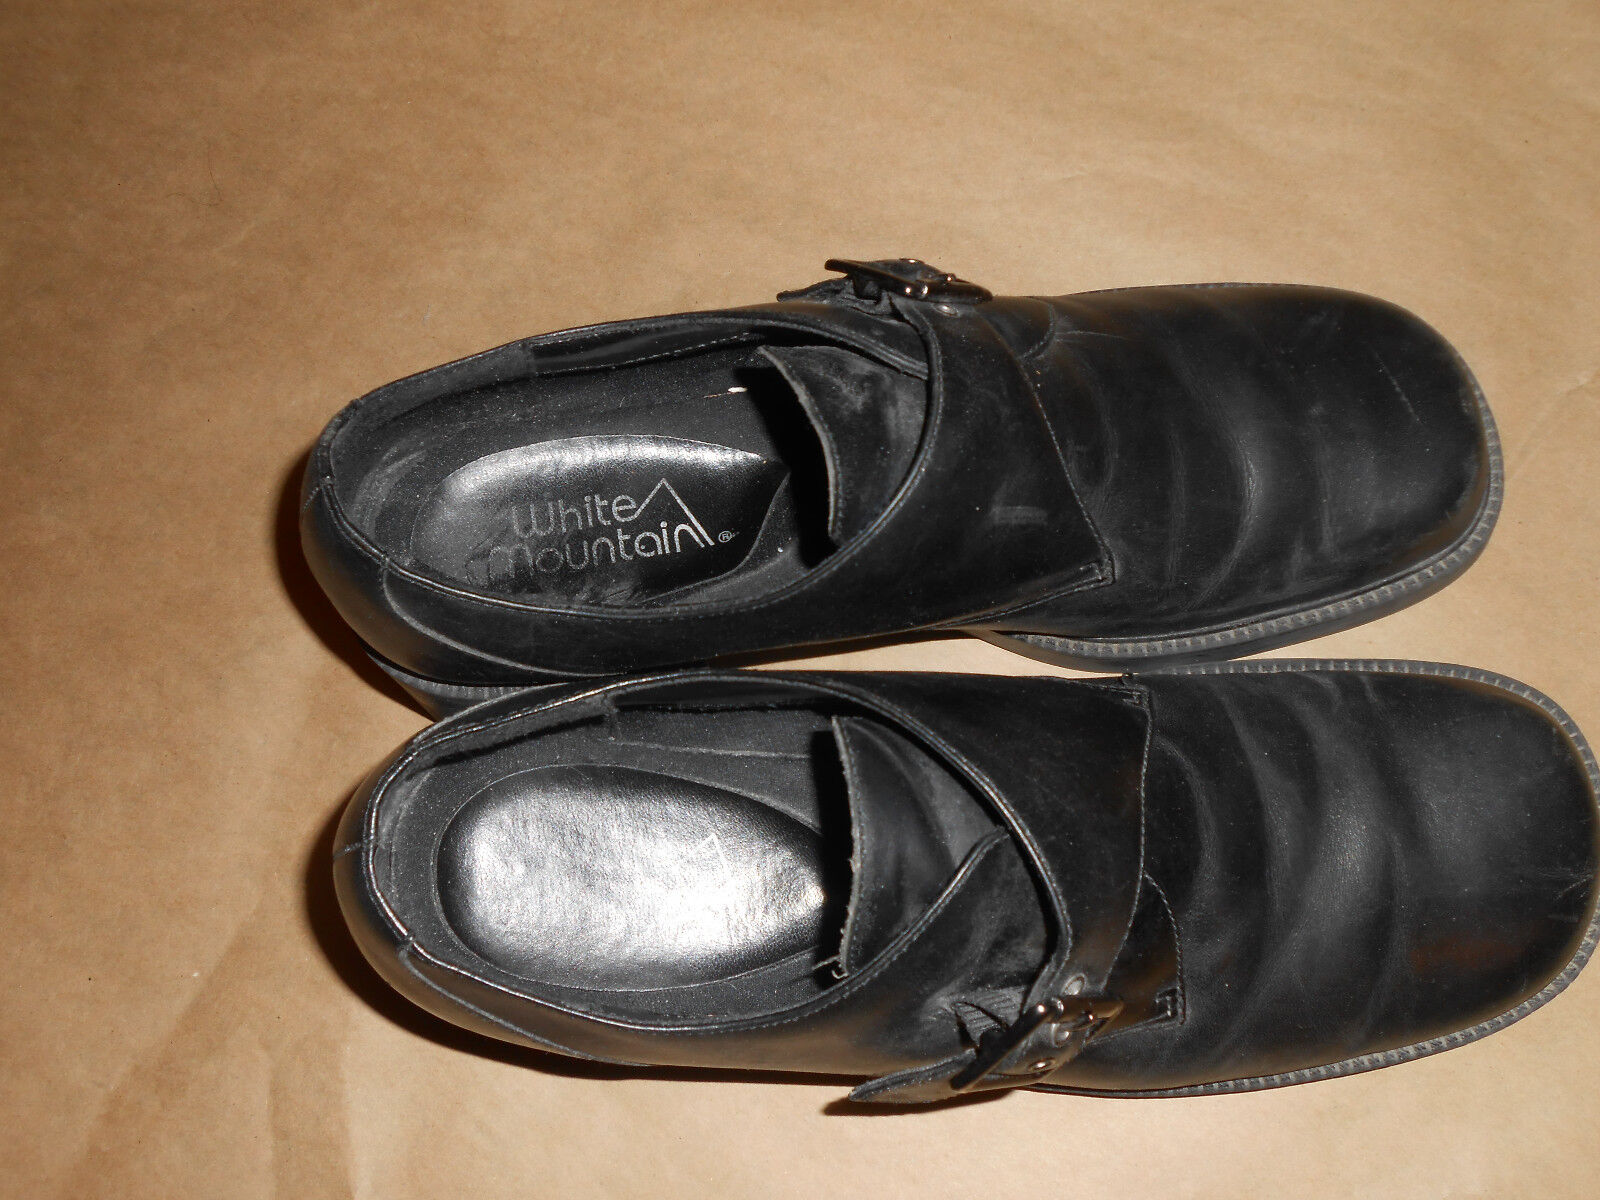 Women Women Women or girls Black (White Mount) buckle Ankle shoes, size 10M Great condition. 92fe25